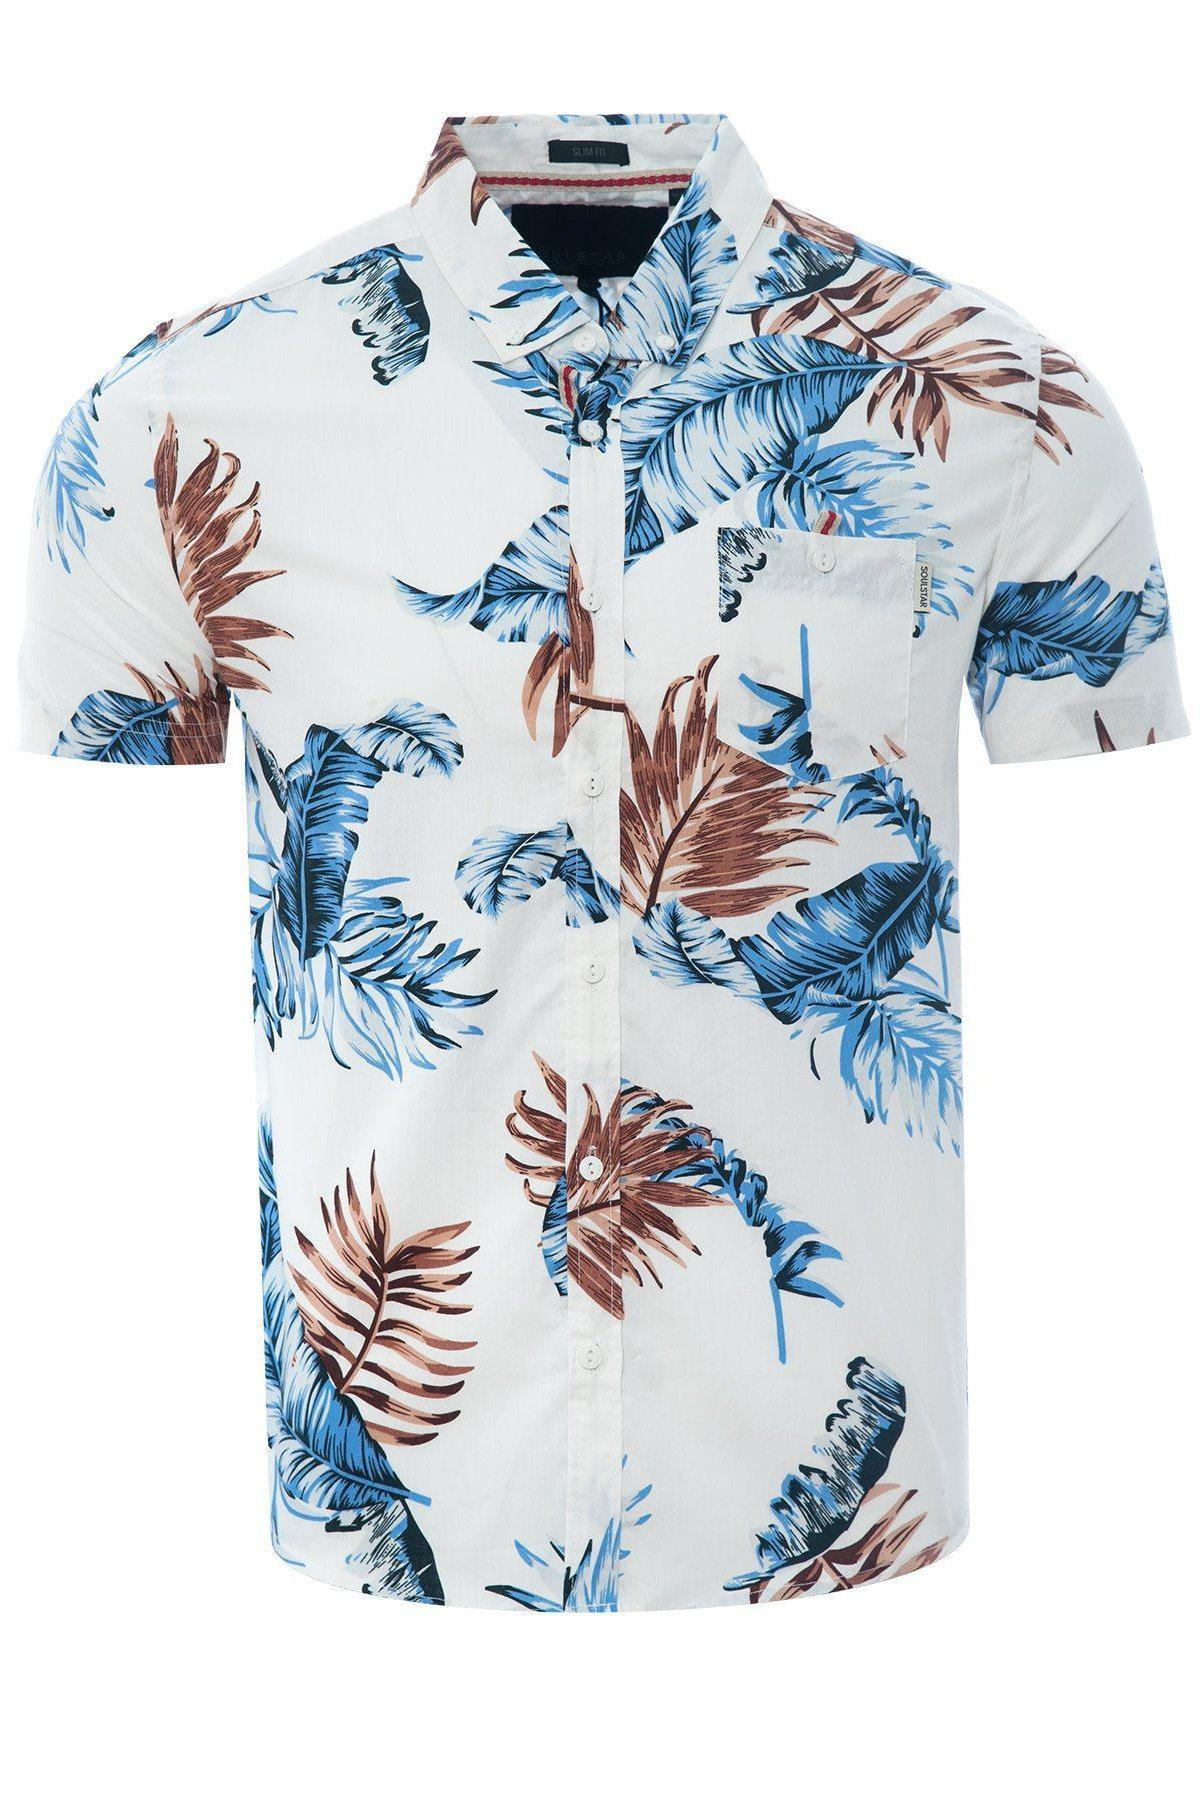 Soft Feather Holiday Shirt White